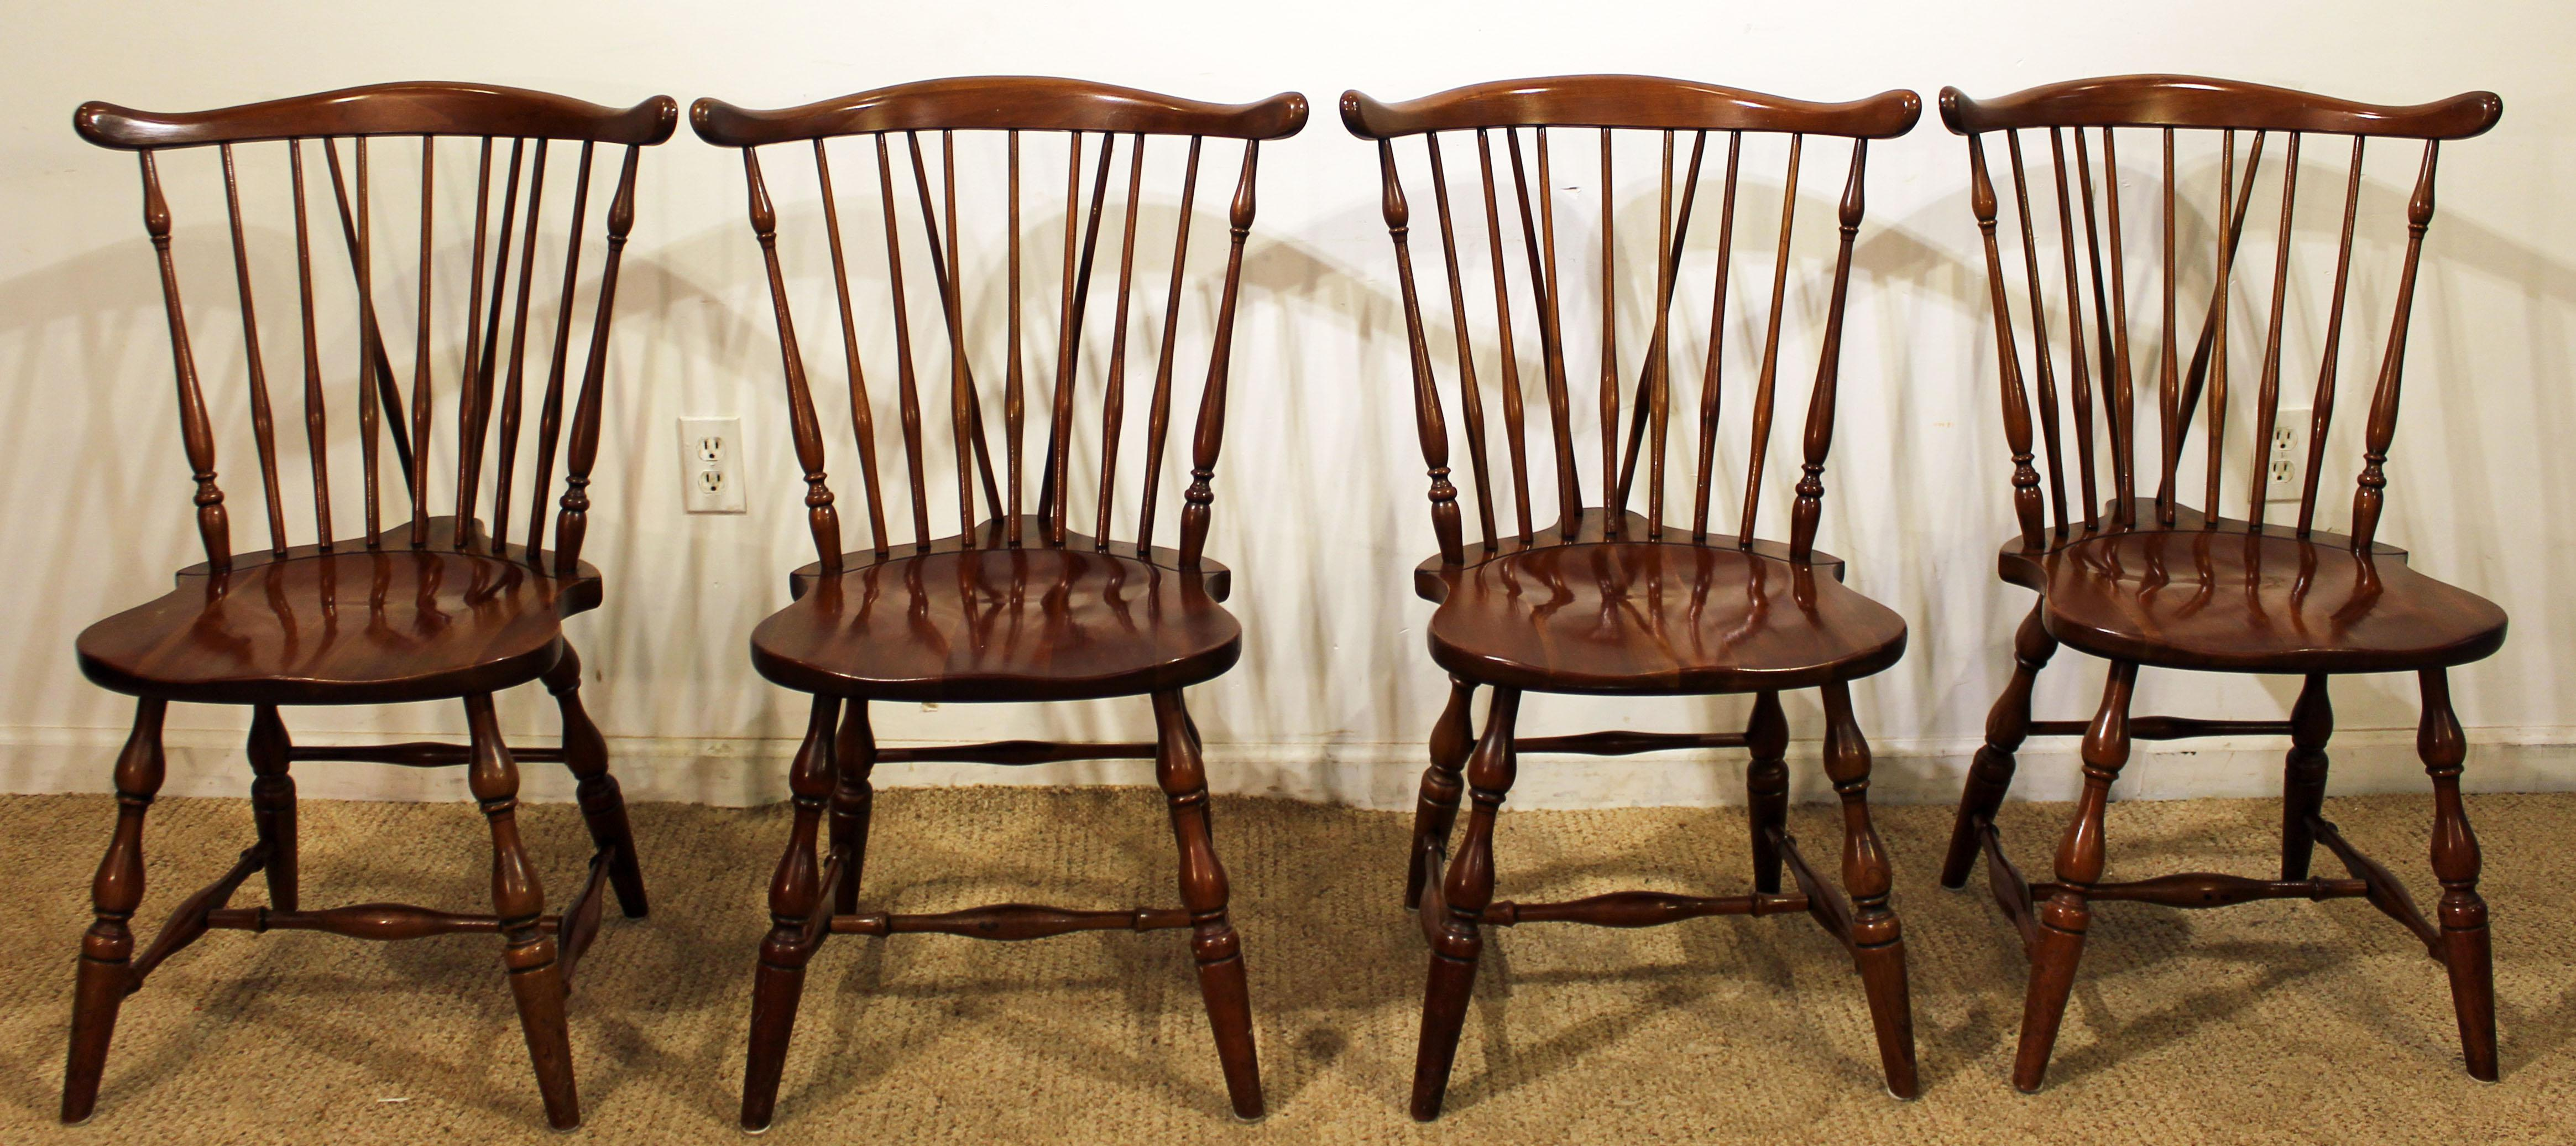 Set Of 4 Pennsylvania House Windsor Brace Back Dining Chairs   Image 3 Of 11